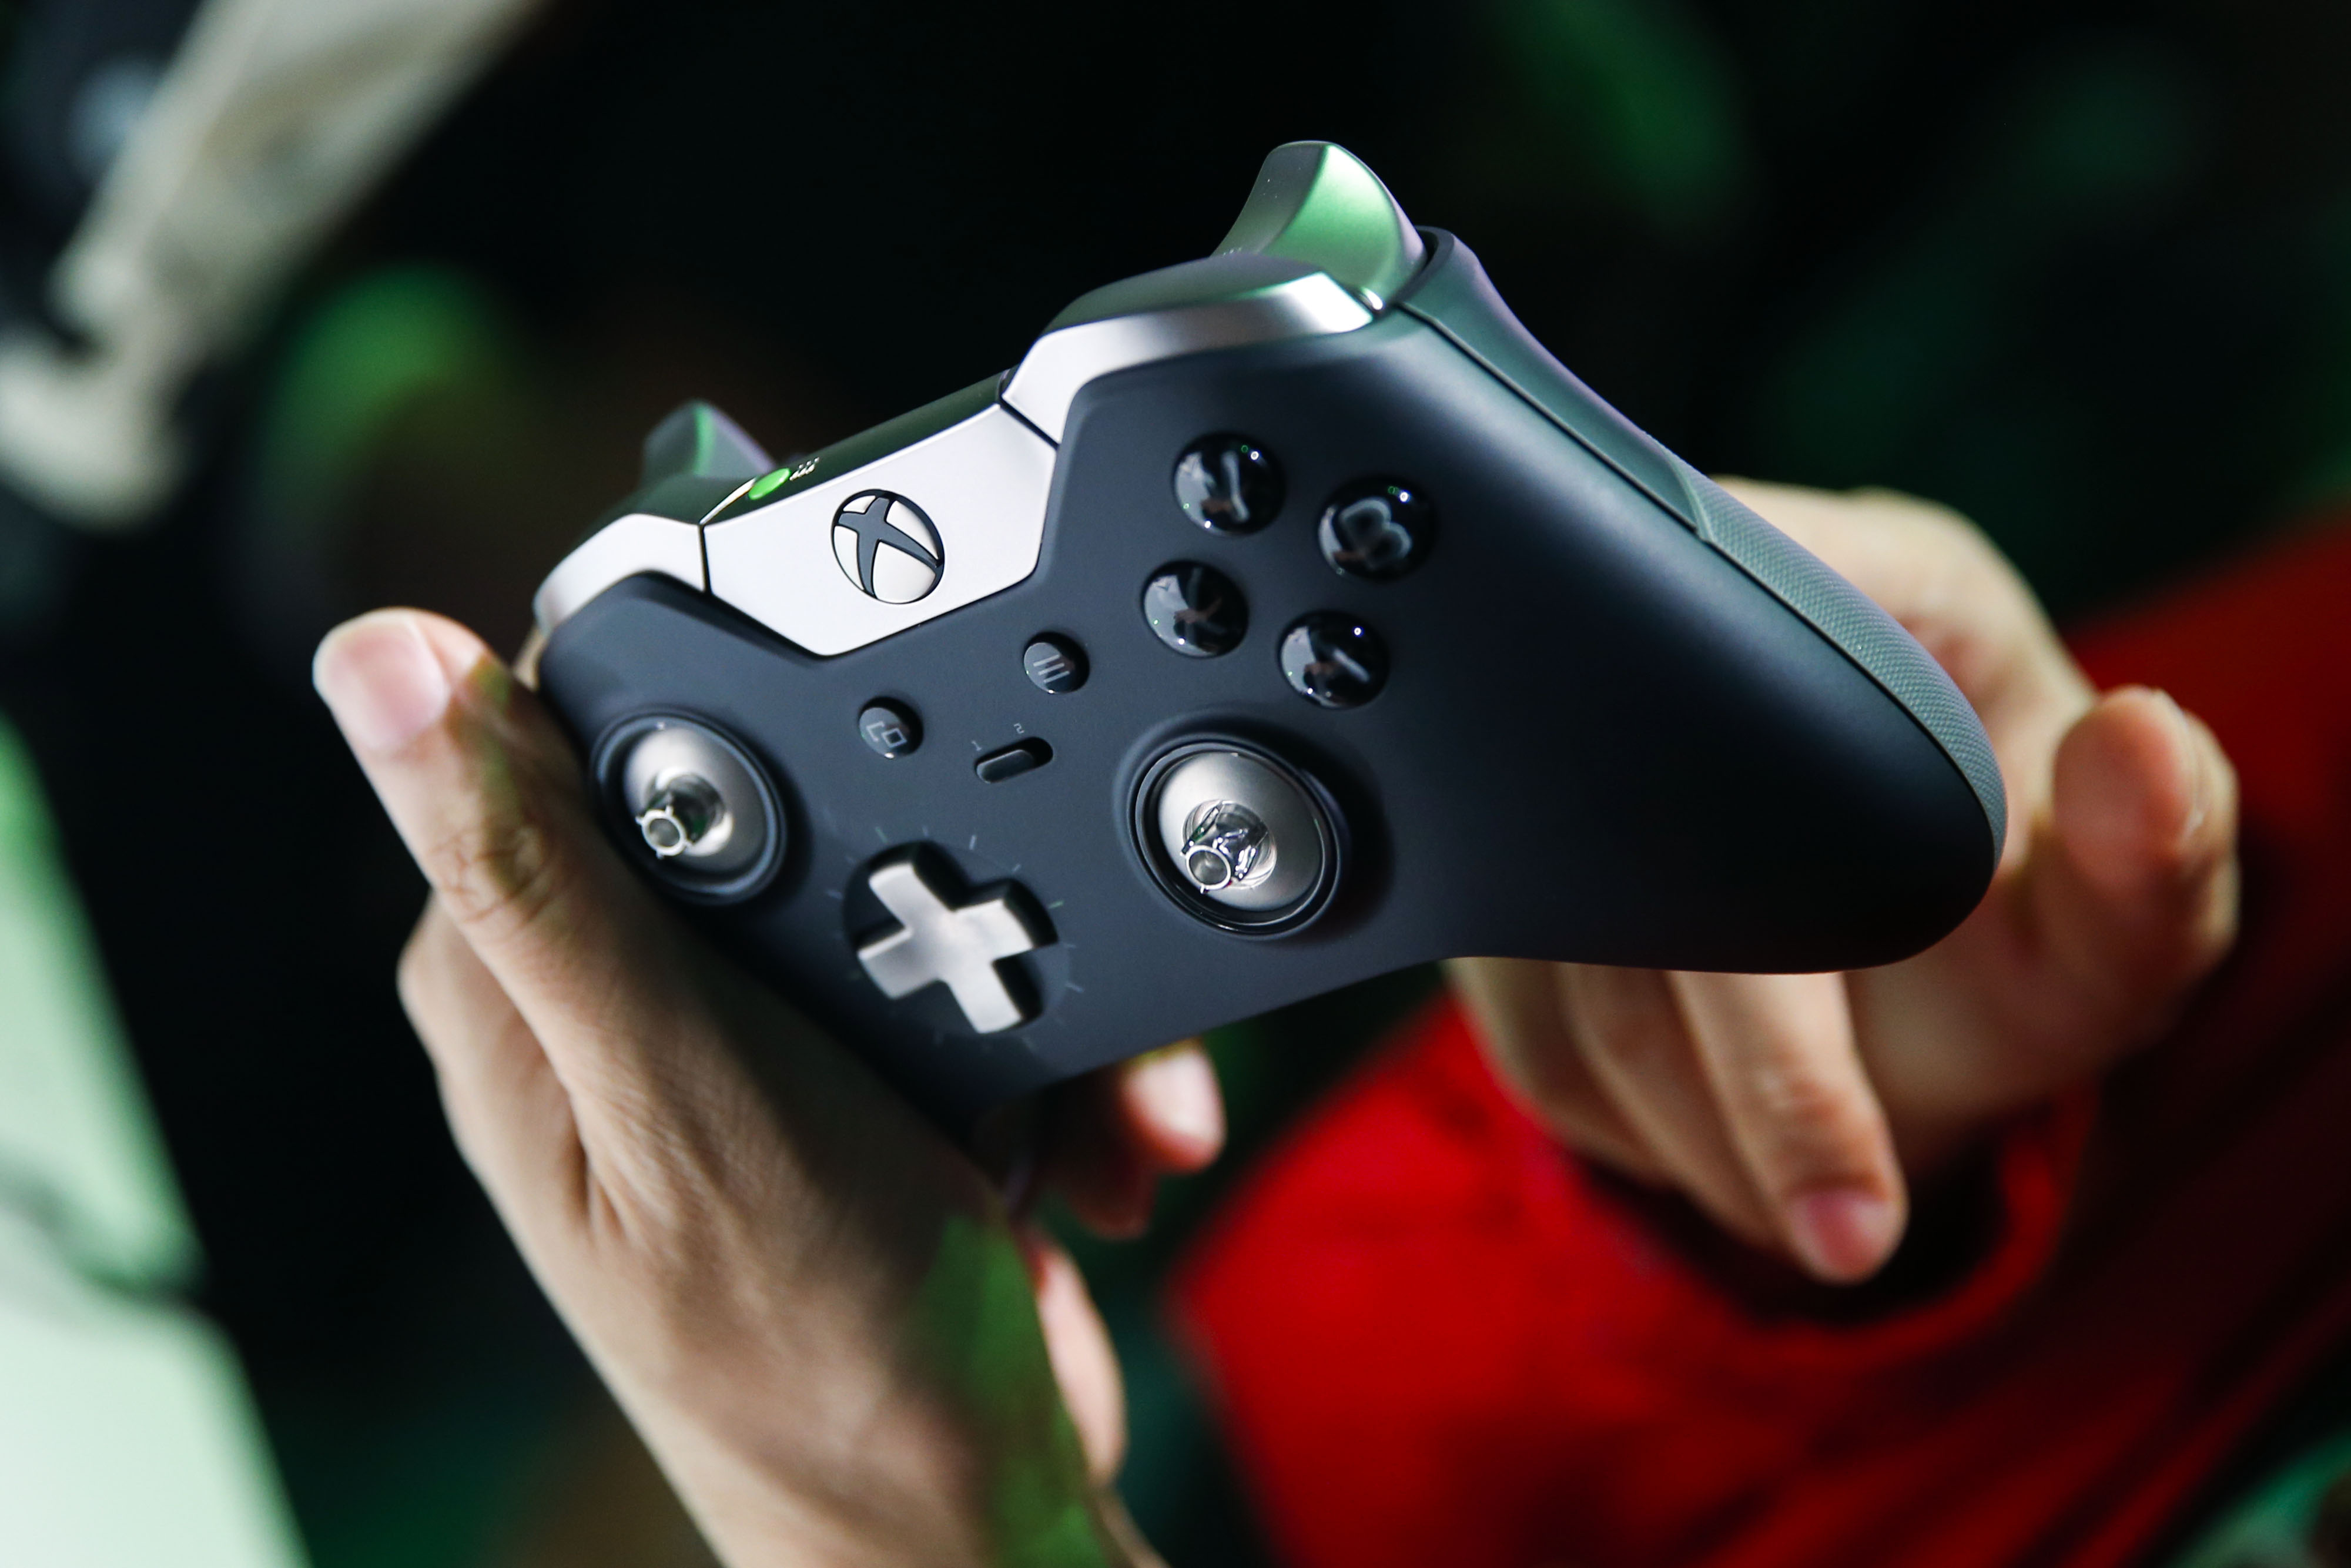 A man holds a Microsoft Corp. Xbox One Elite controller during the E3 Electronic Entertainment Expo in Los Angeles, California, U.S., on Tuesday, June 16, 2015.